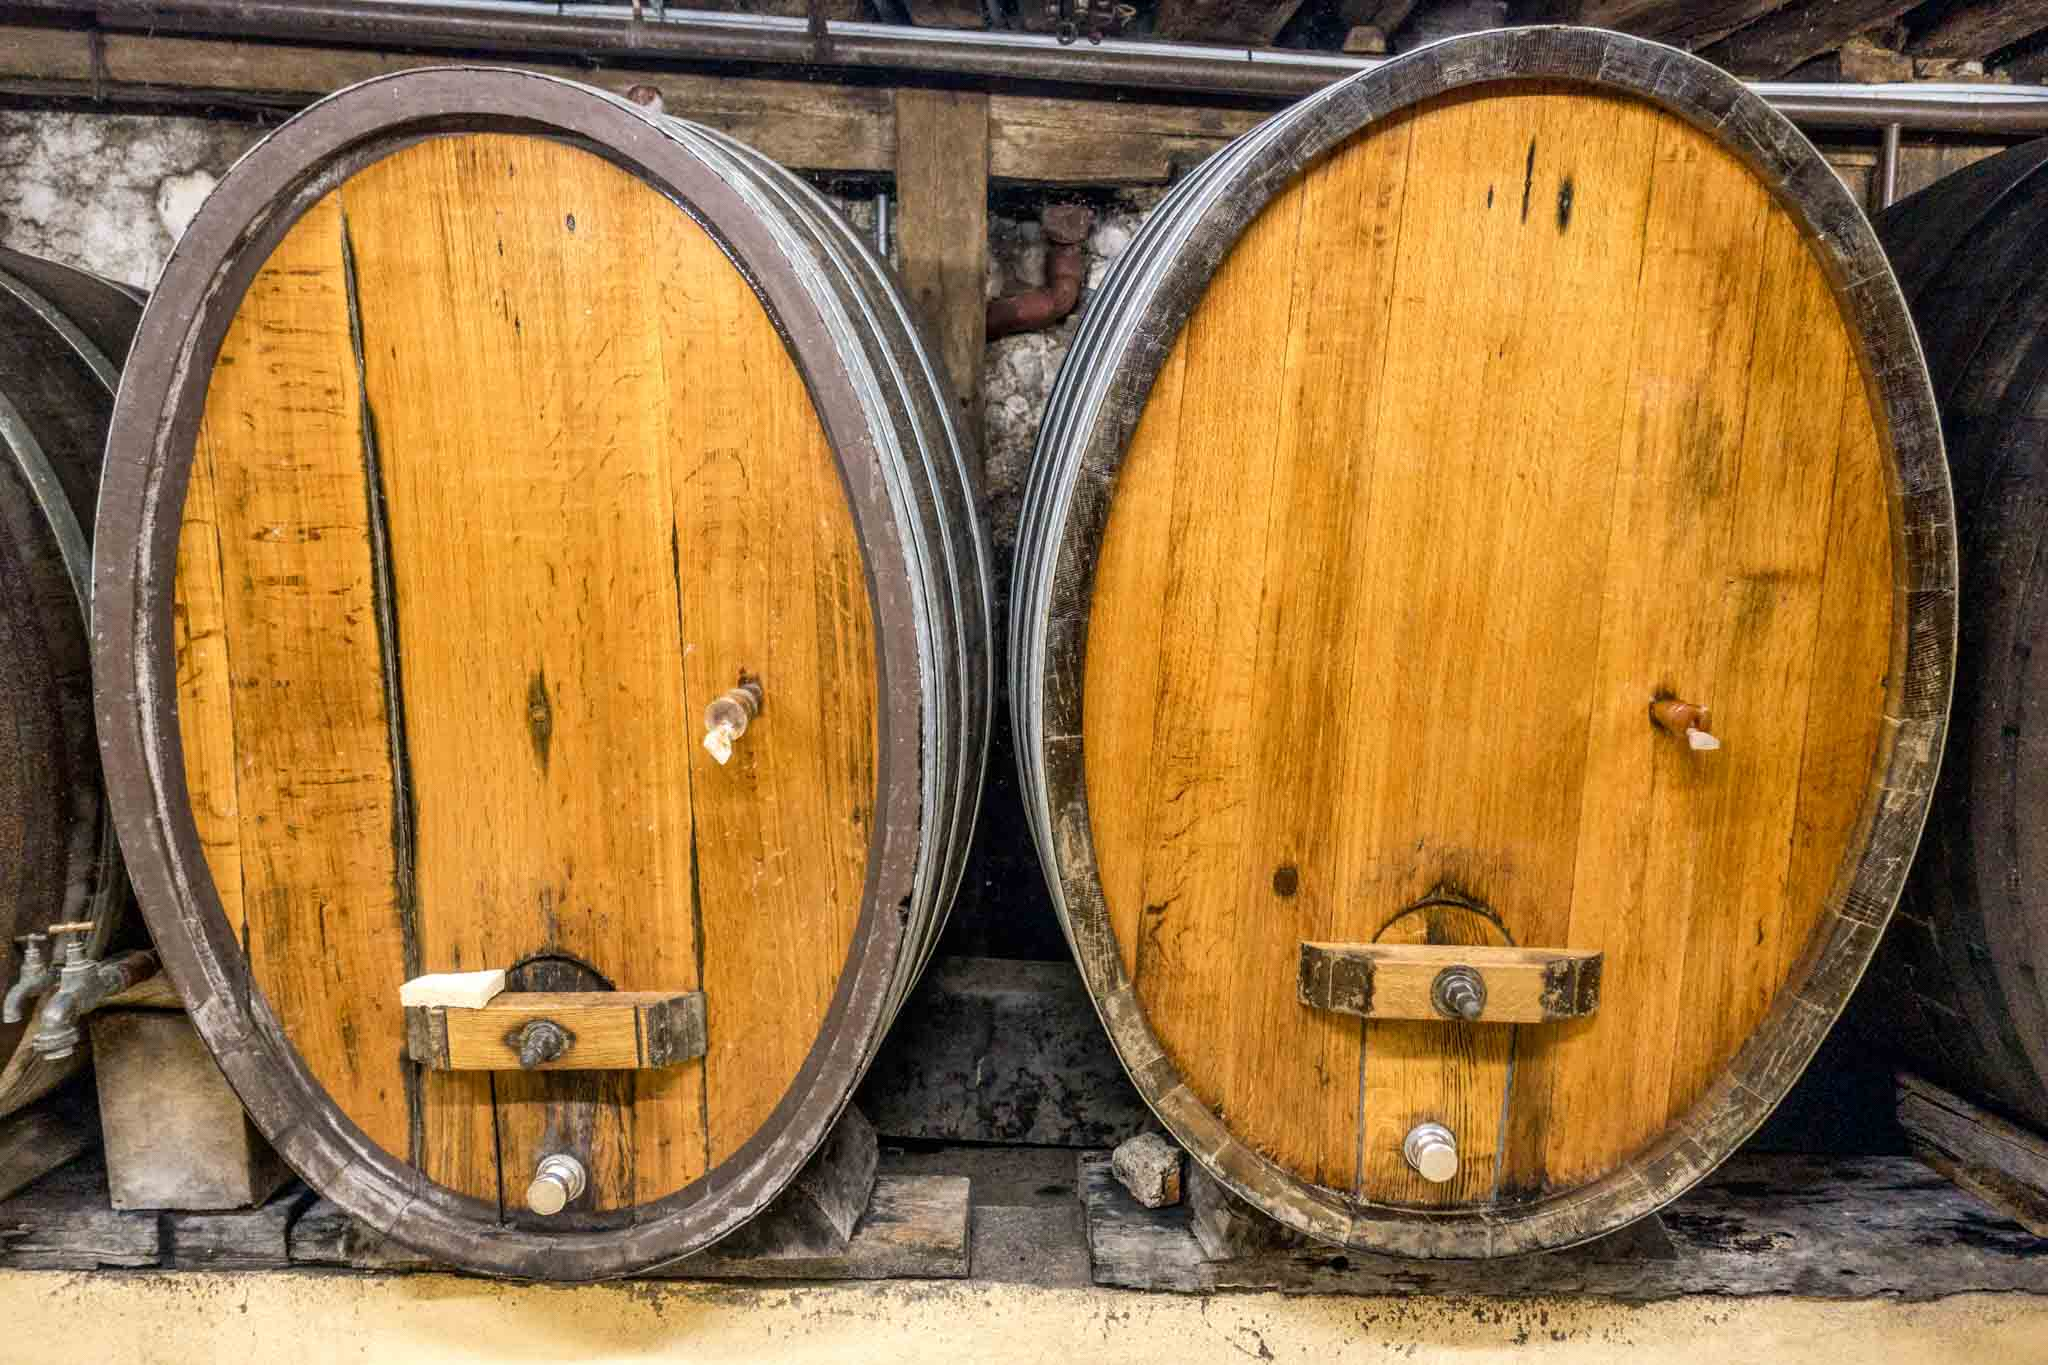 Alsatian wines have been aged in barrels like this for decades. Visit a local winery on your Colmar, France trip.